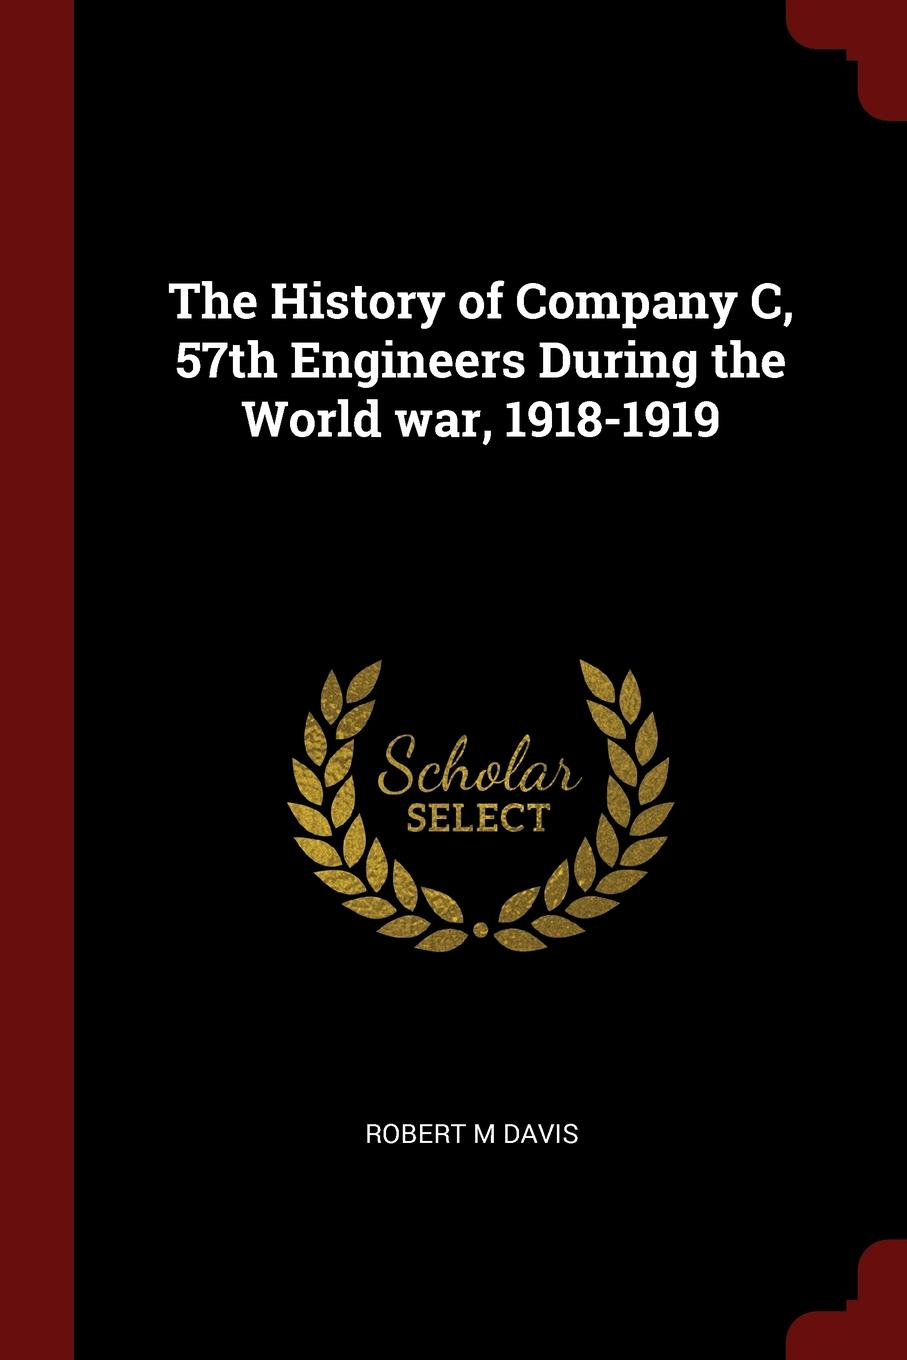 Robert M Davis The History of Company C, 57th Engineers During the World war, 1918-1919 gtbracing 57th